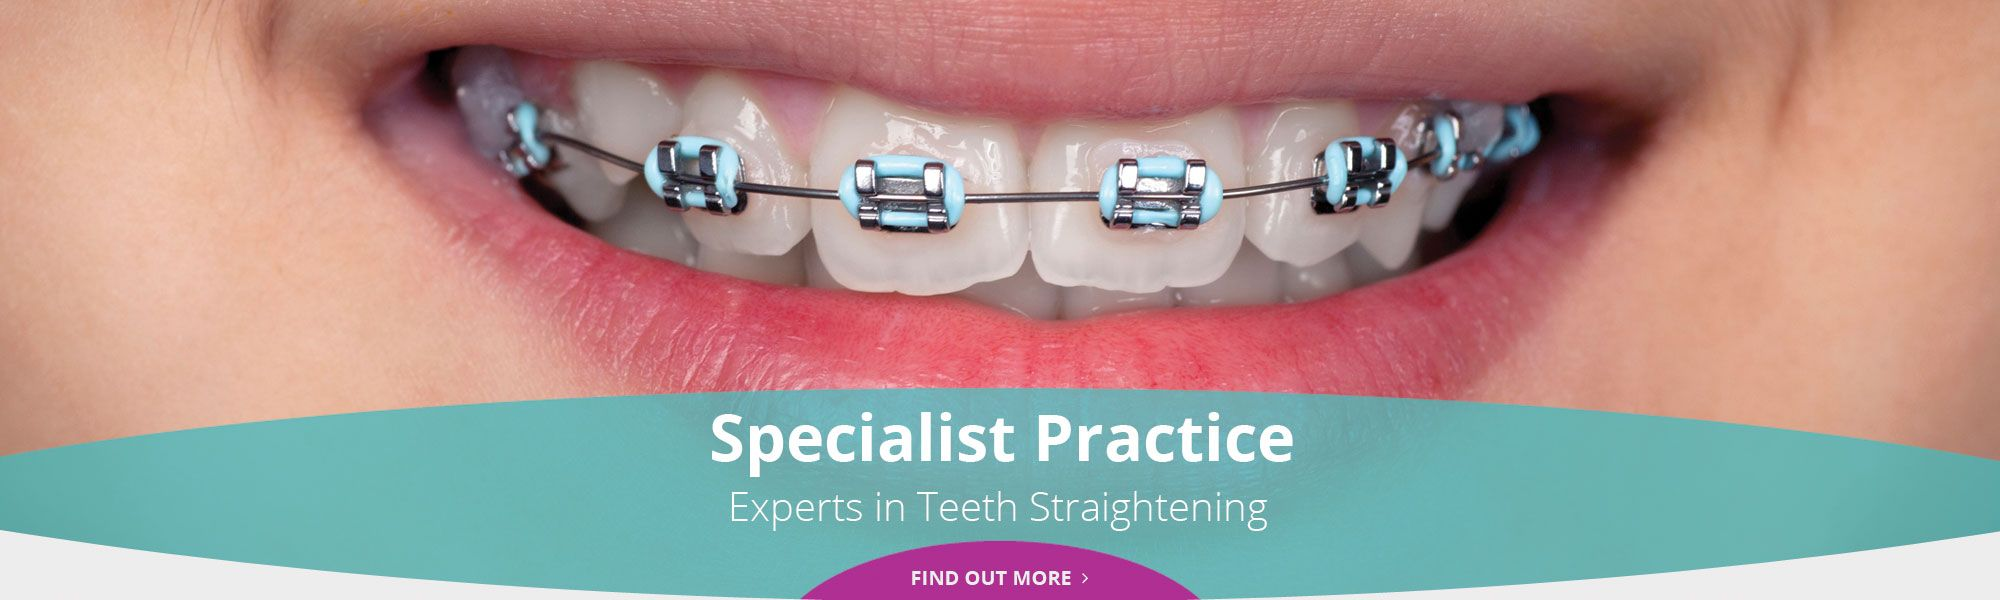 Specialist Practice - Experts in Teeth Straightening - Find out more